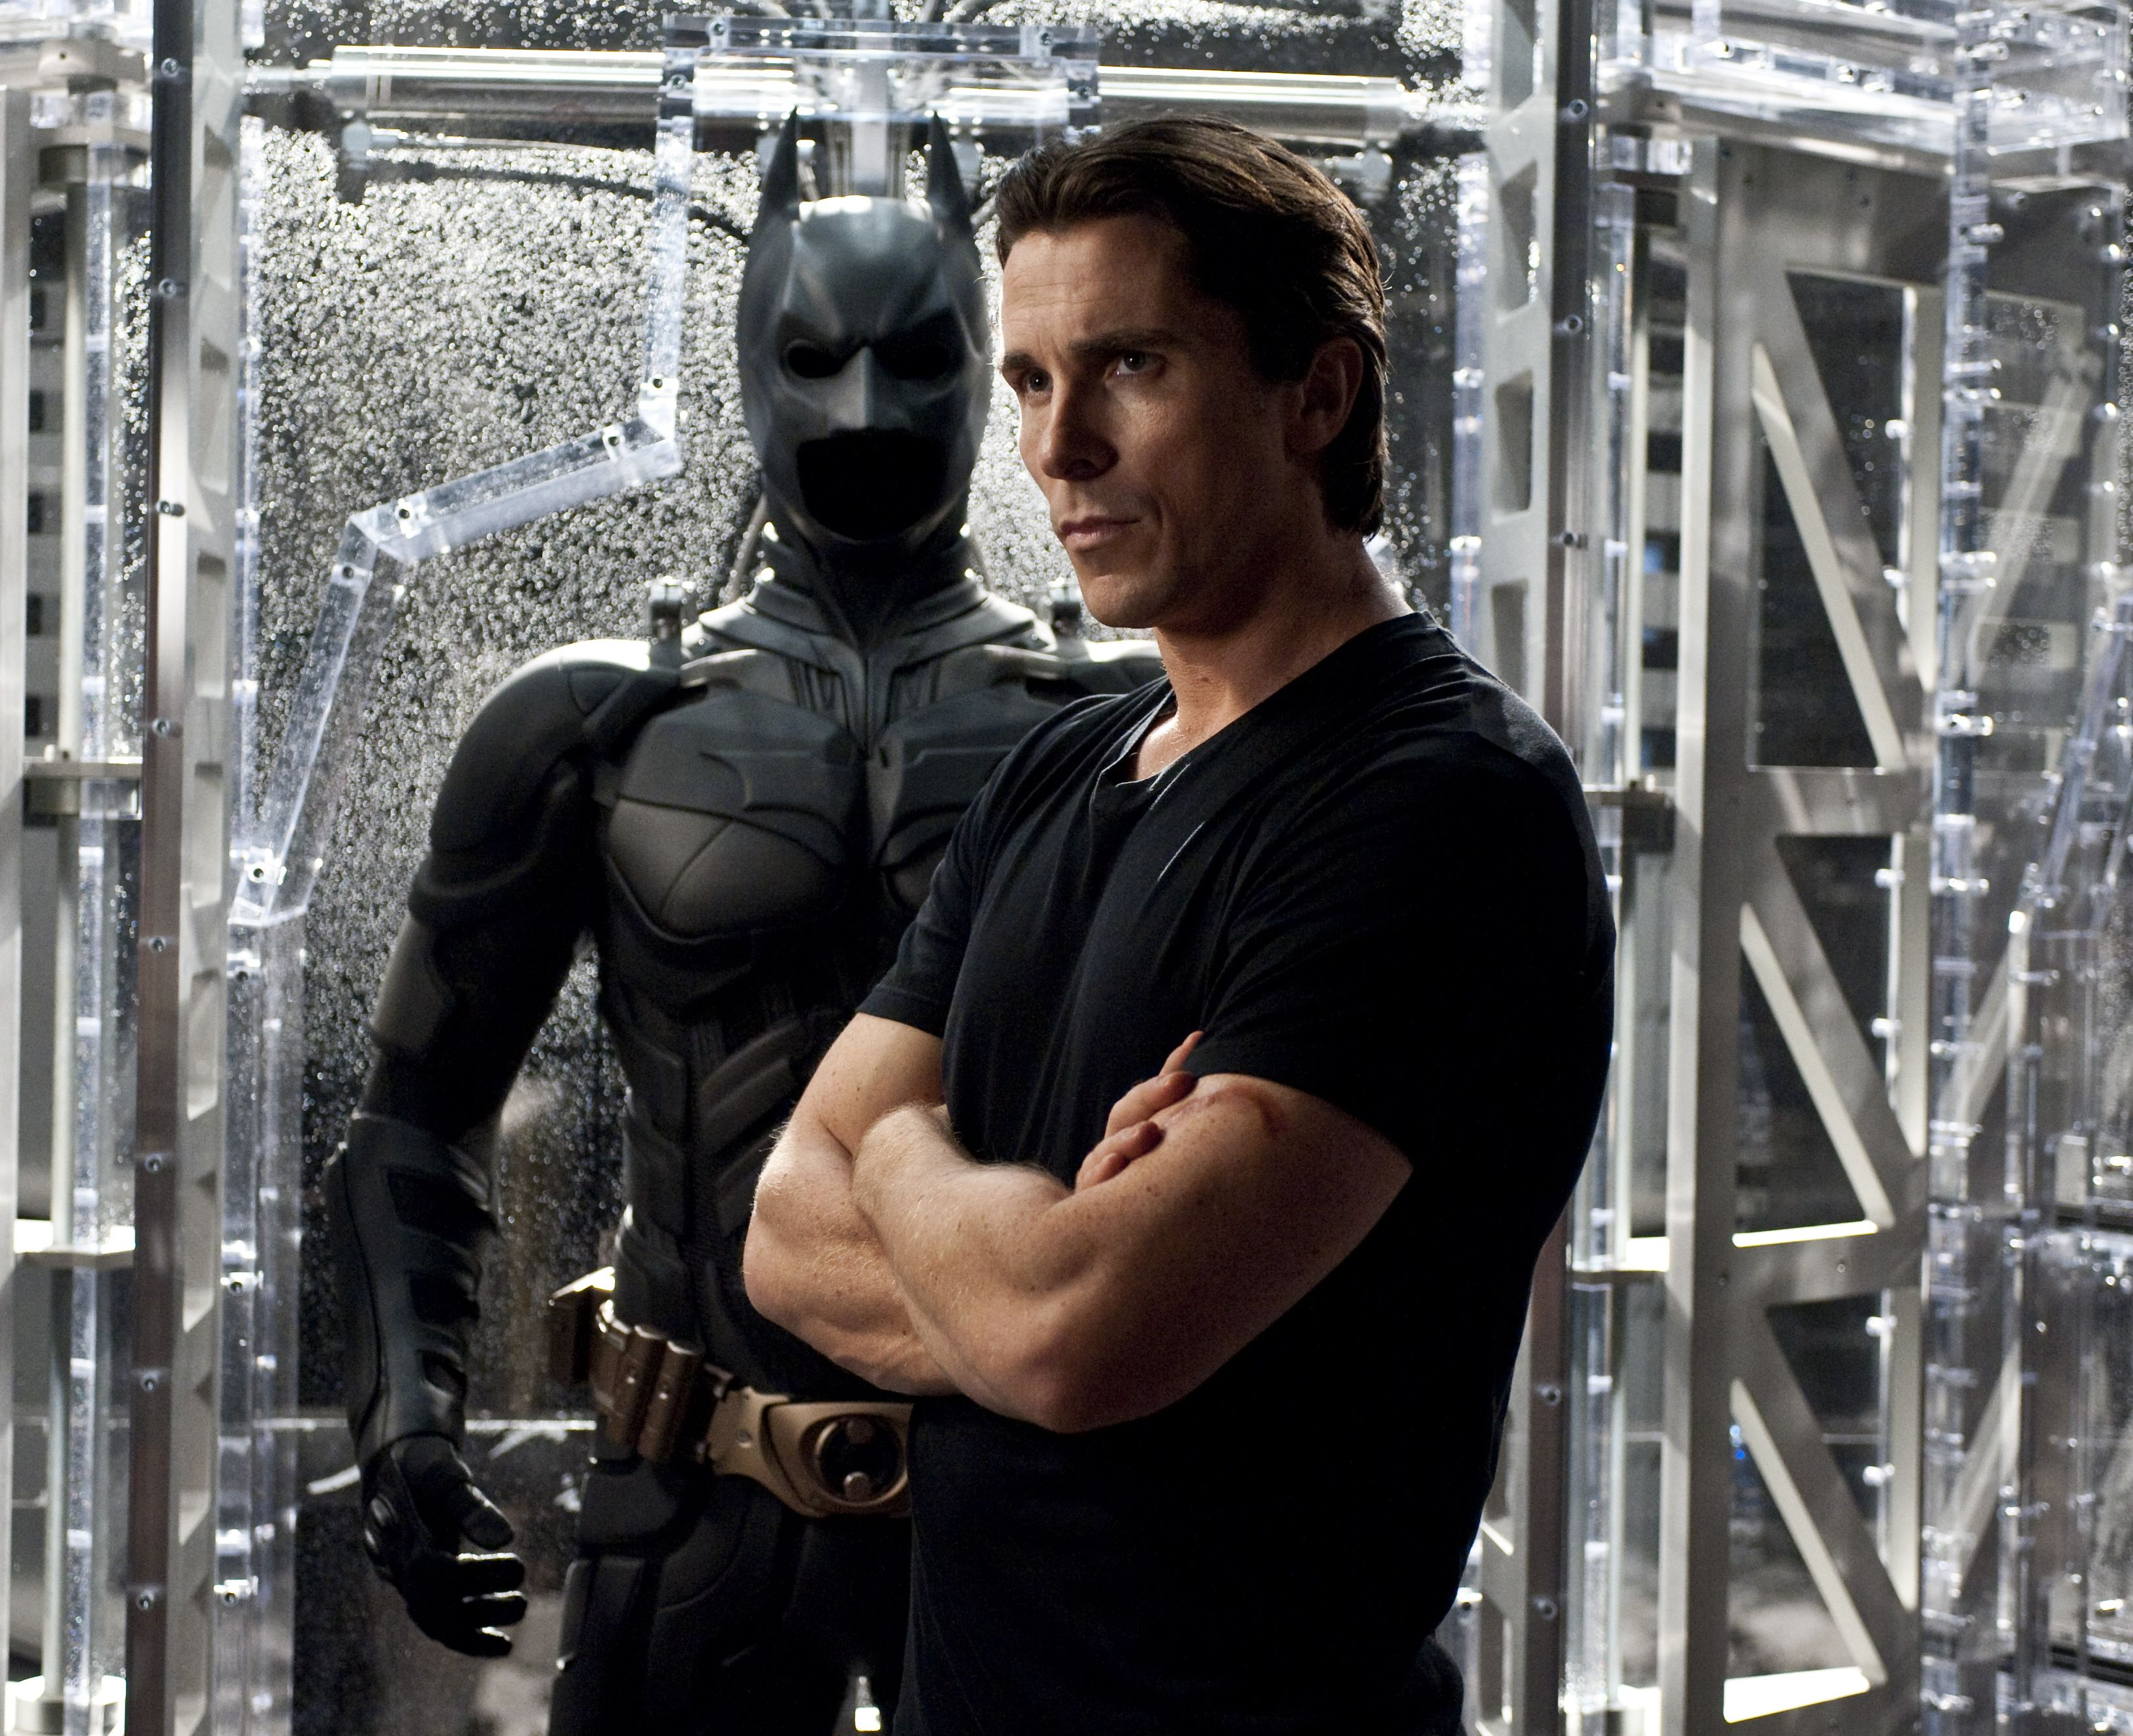 Christian Bale as Bruce Wayne in front of Batsuit